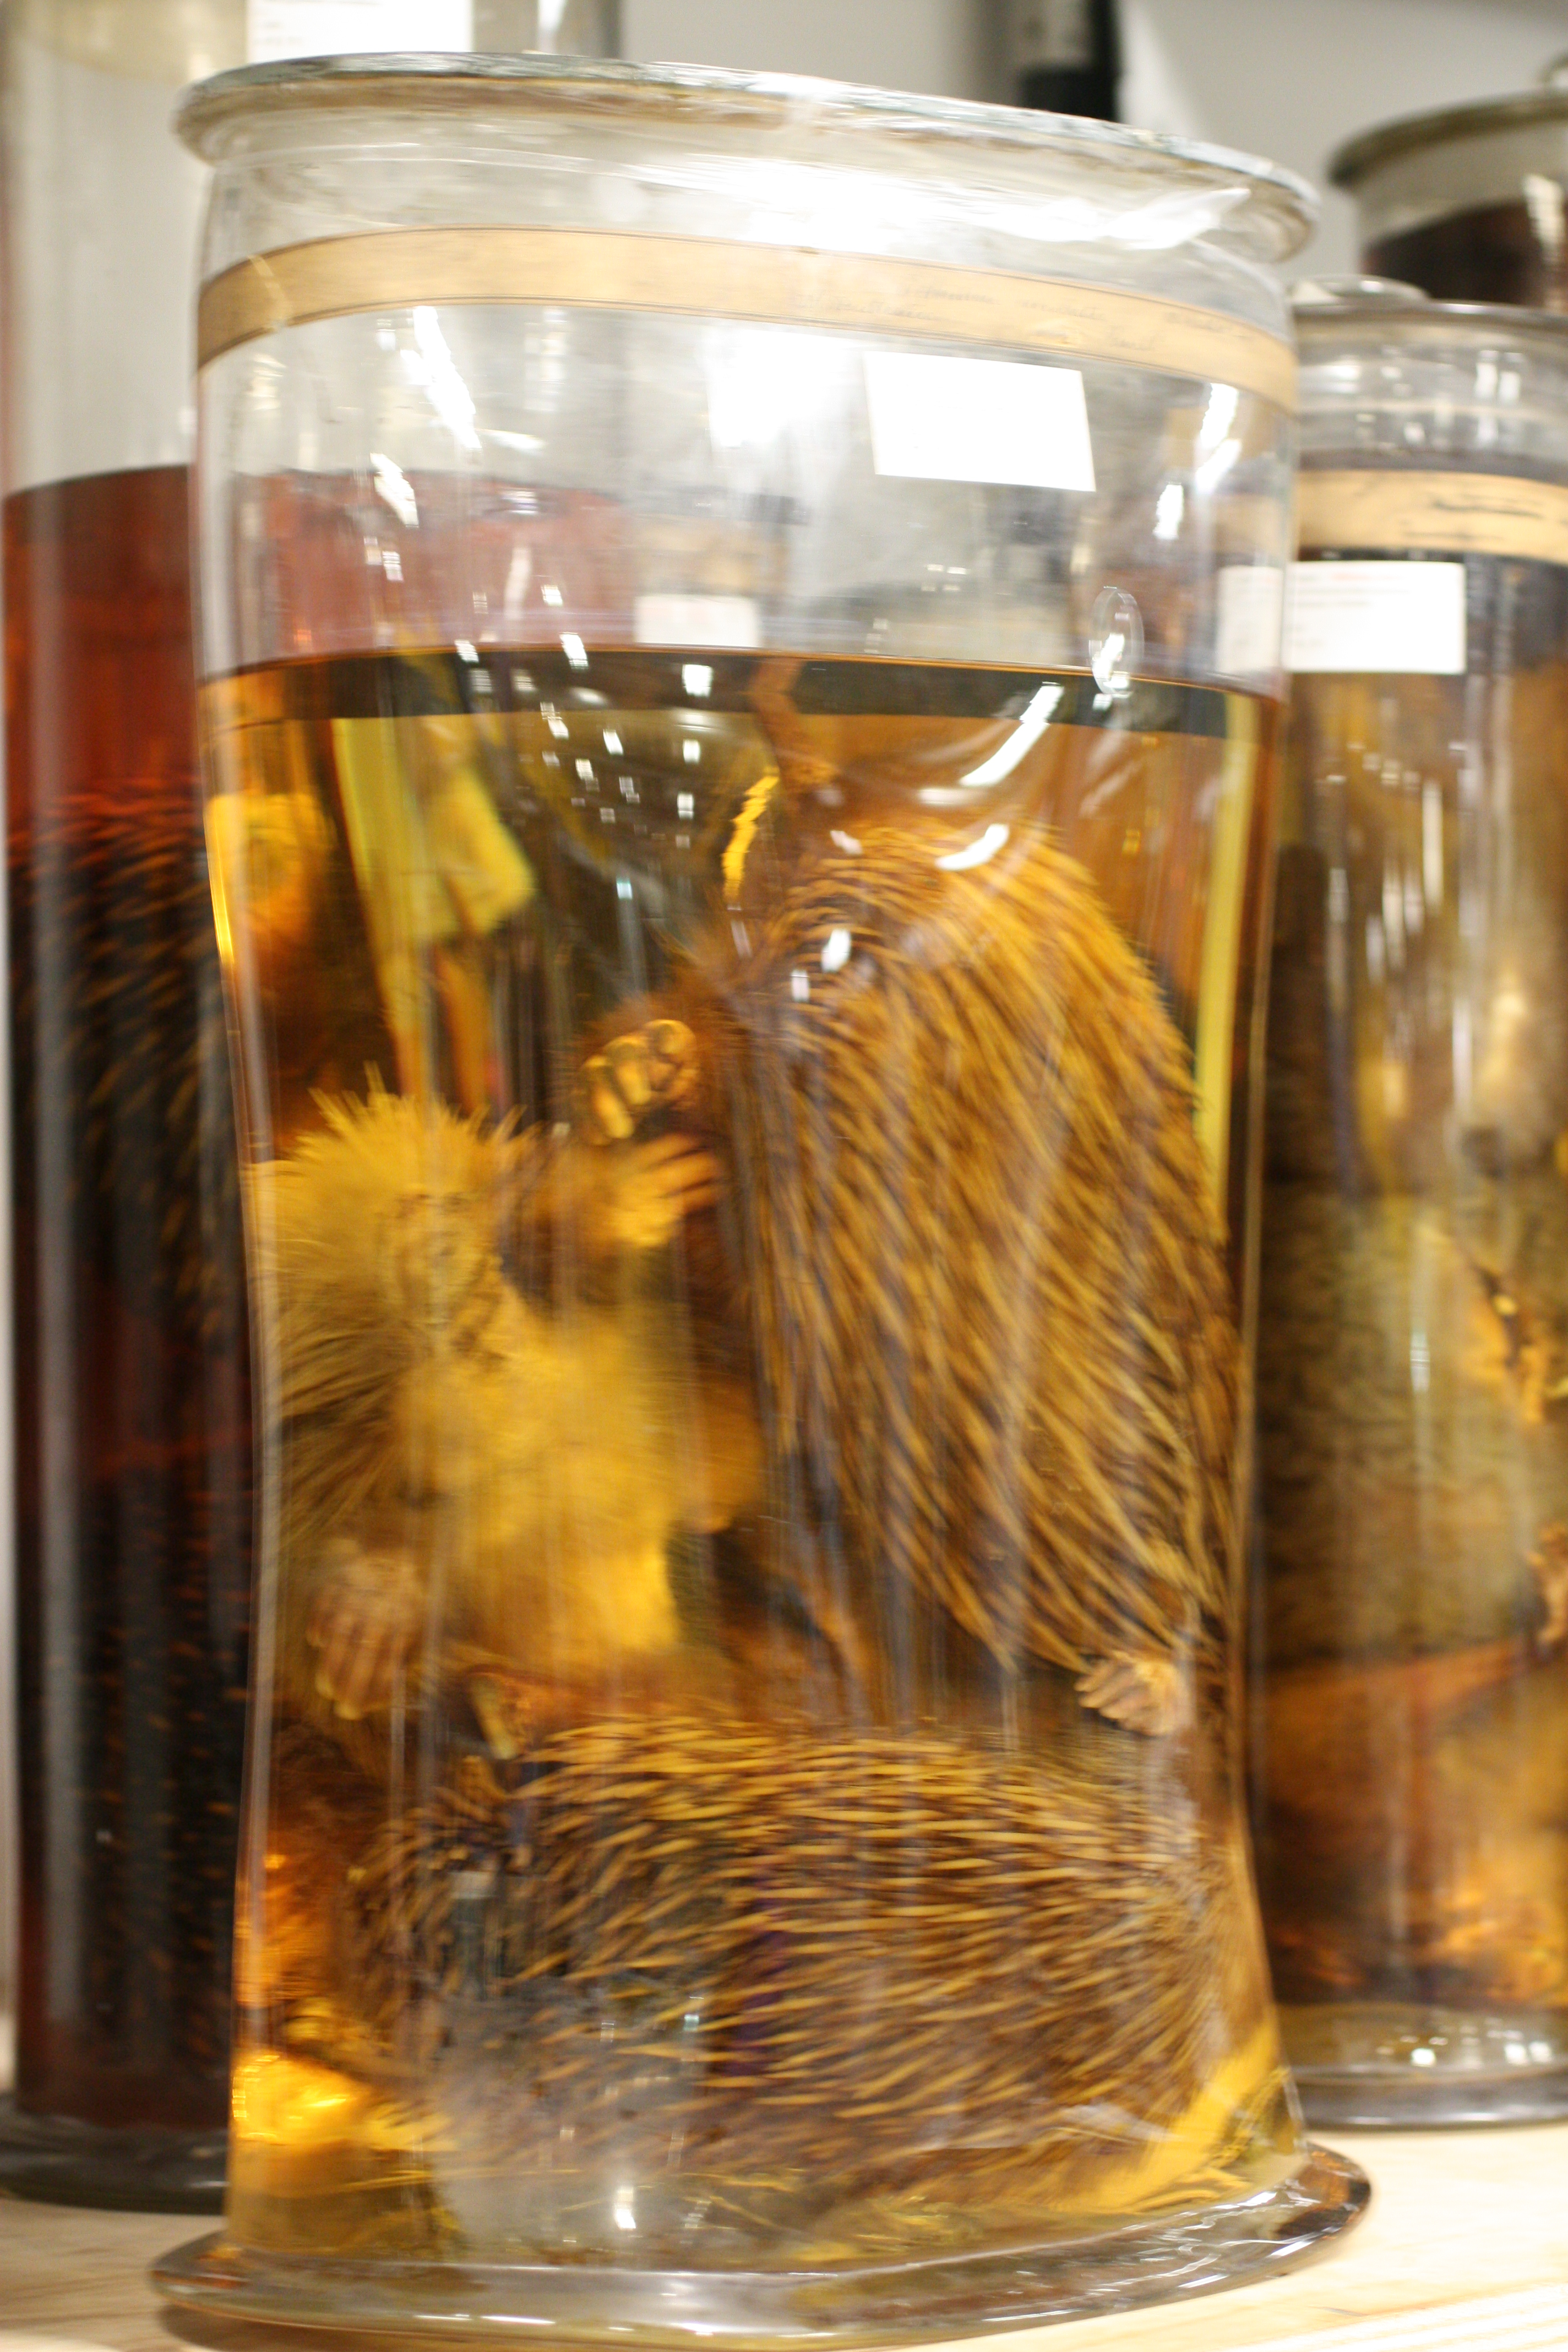 File:Echidnas in alcohol, Spirit Tour, Natural History Museum, London 01.